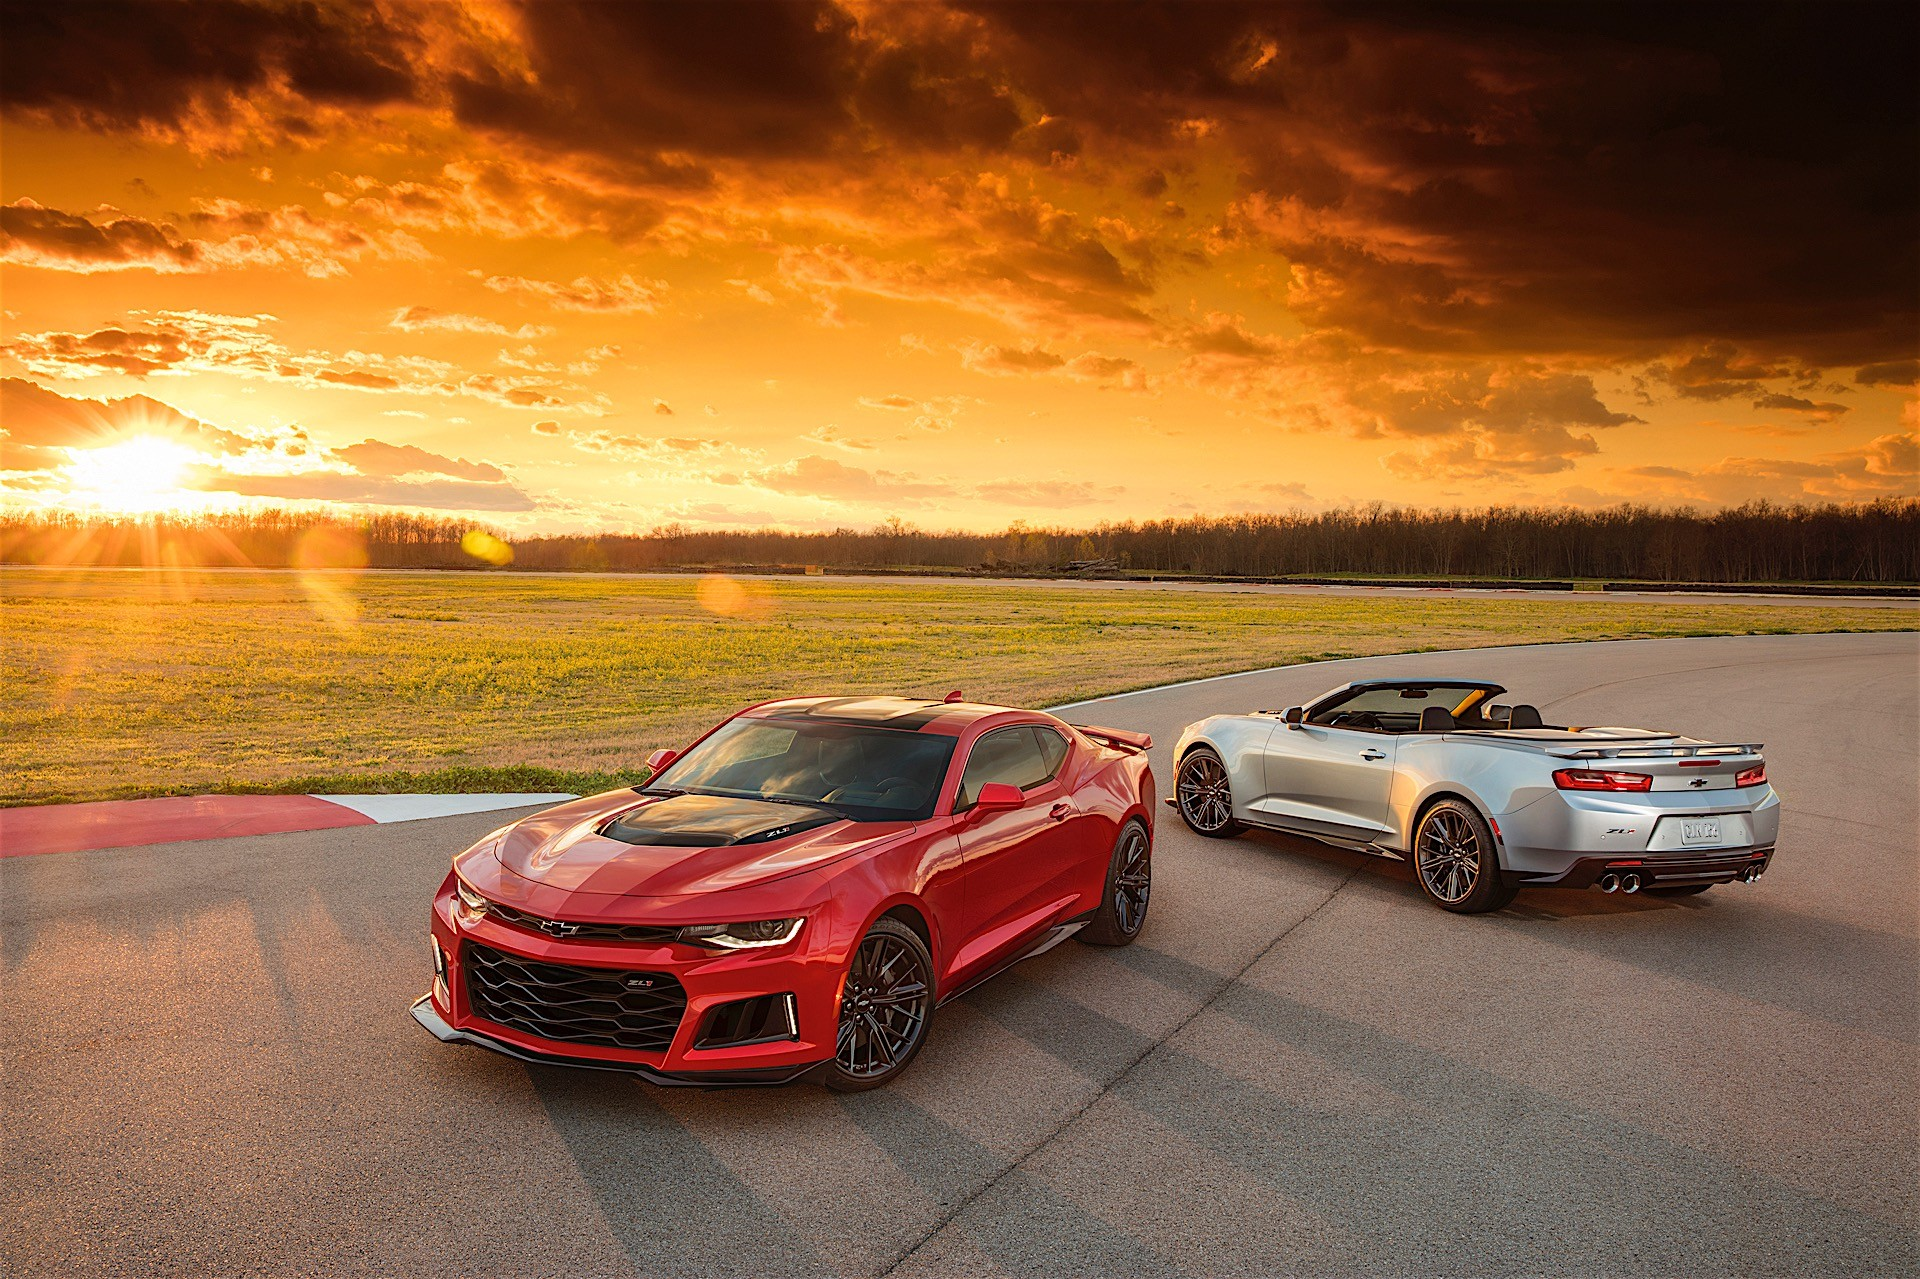 2017 Chevrolet Camaro Zl1 Convertible Brings Its Soft Top In New York Autoevolution